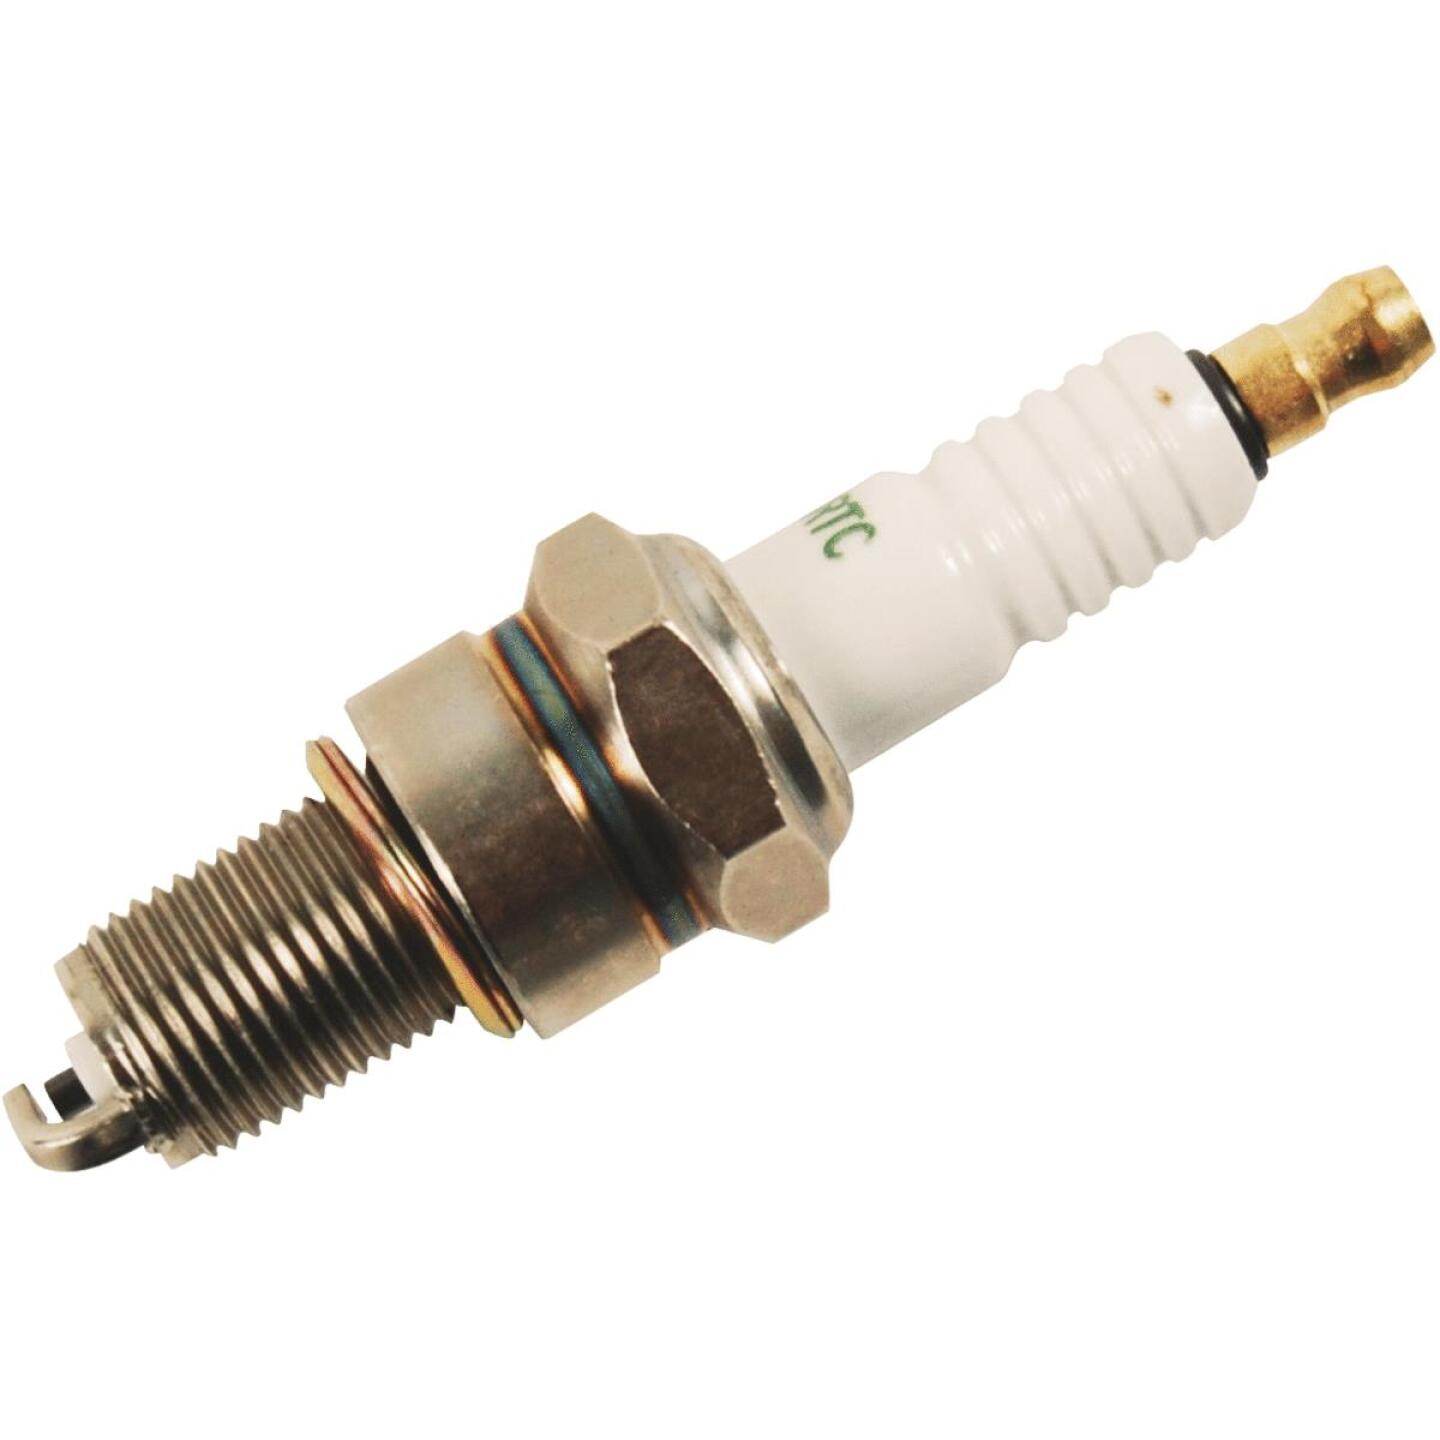 Arnold Powermore 13/16 In. Spark Plug Image 1